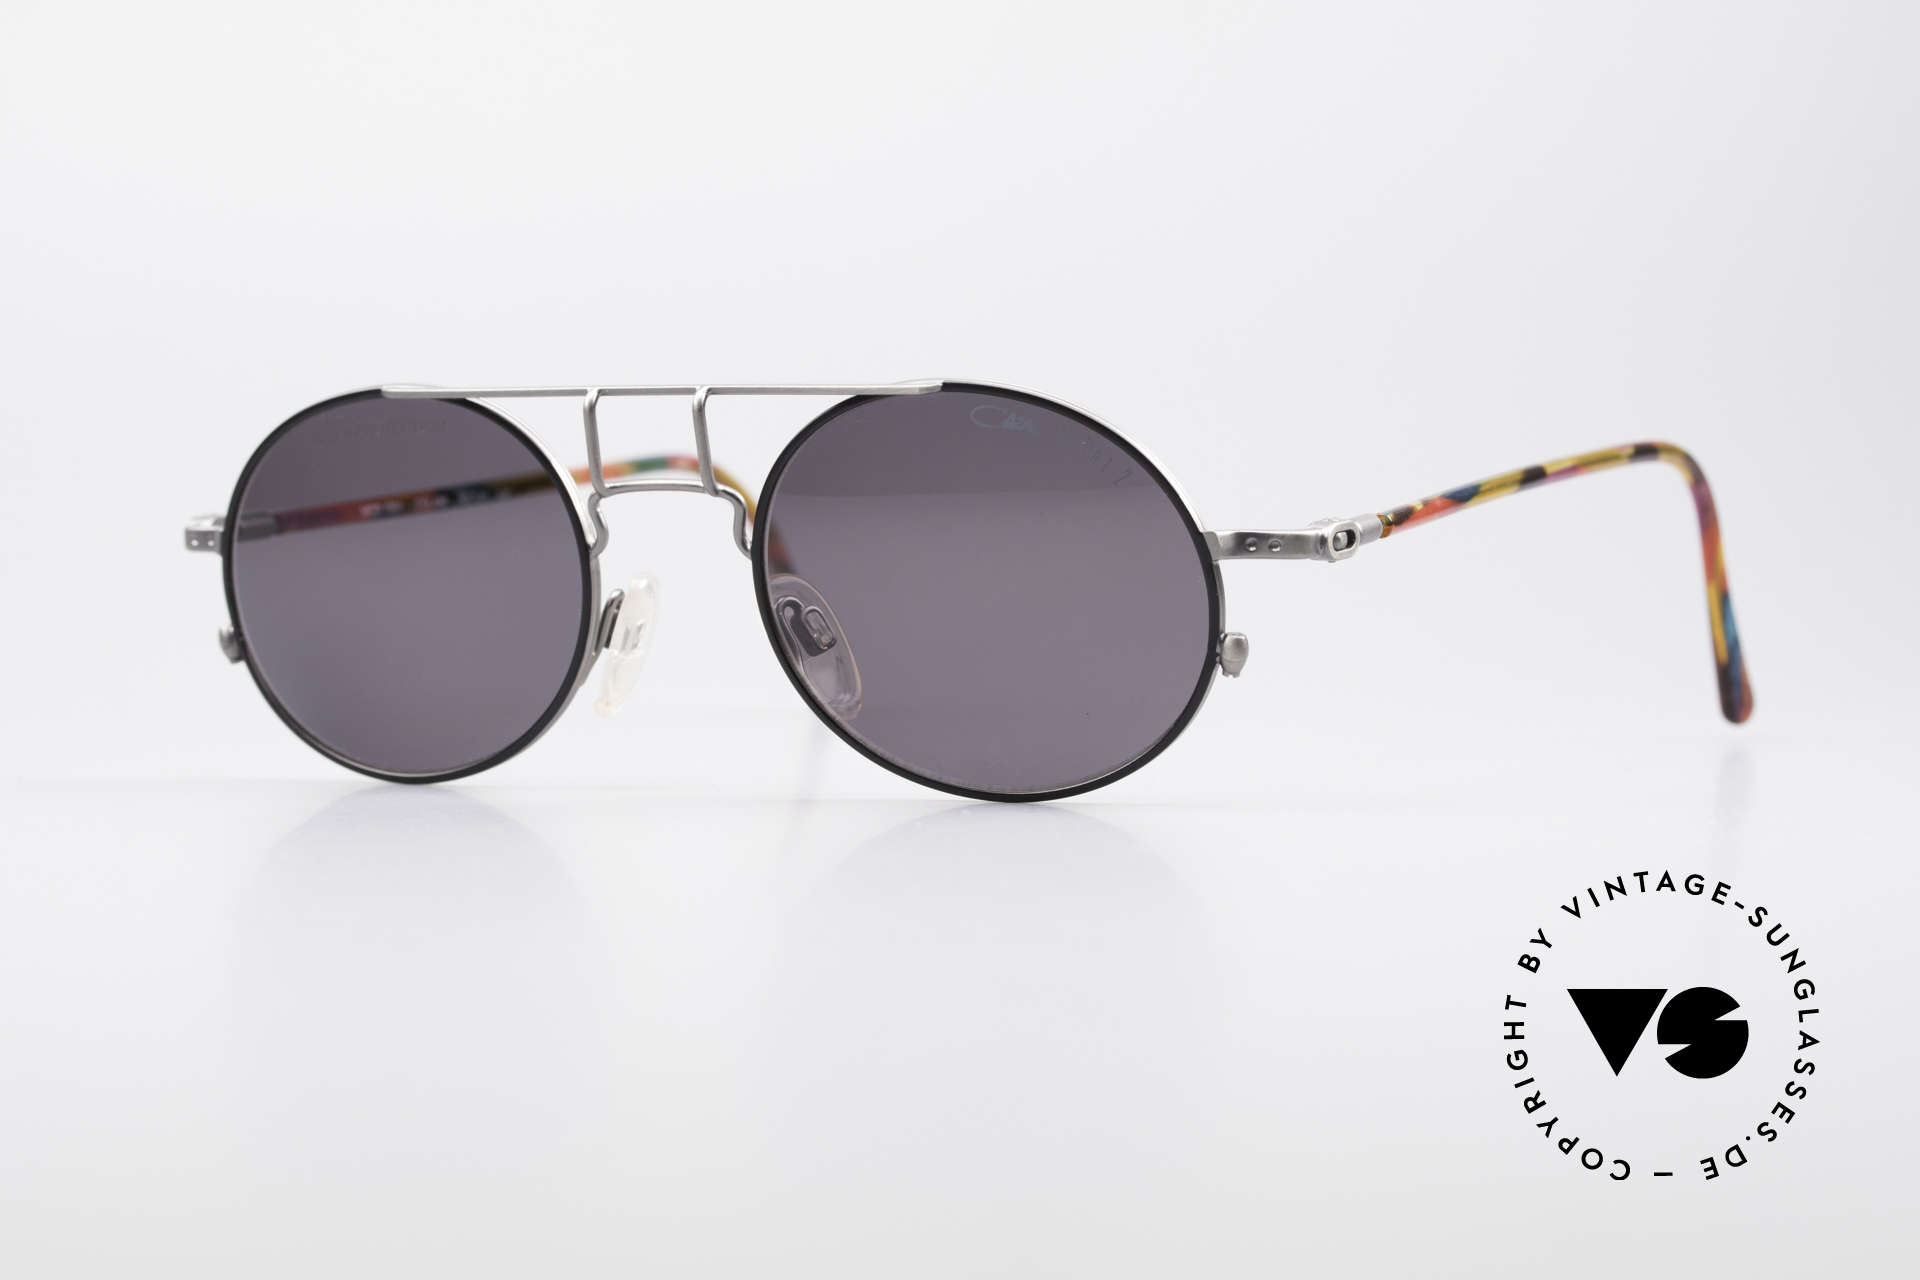 Cazal 1201 - Point 2 90's Industrial Style Shades, 1201: one of the top-models of the Cazal Point 2 series, Made for Men